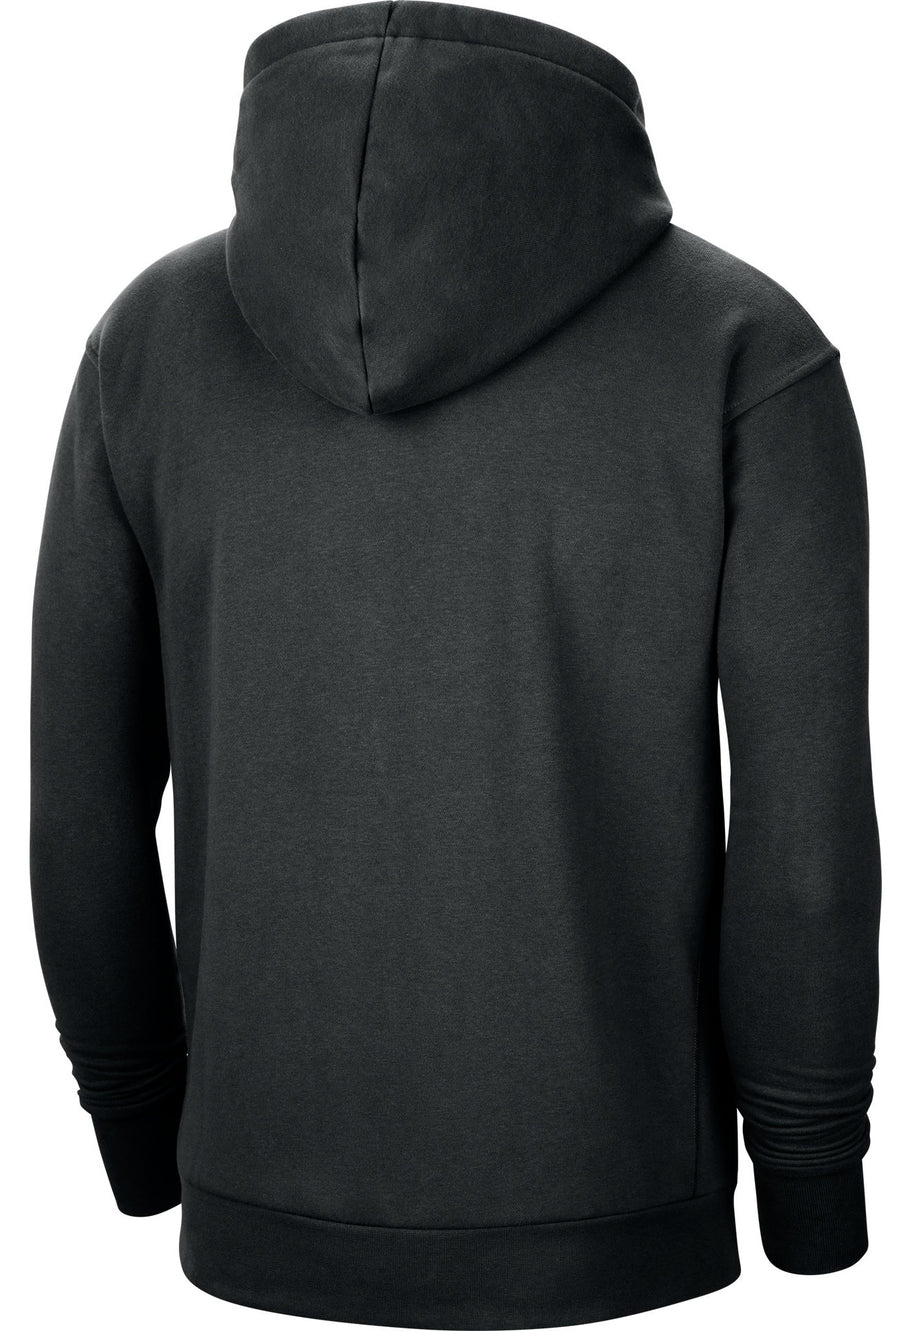 Nike MLK City Edition Pullover Hoodie